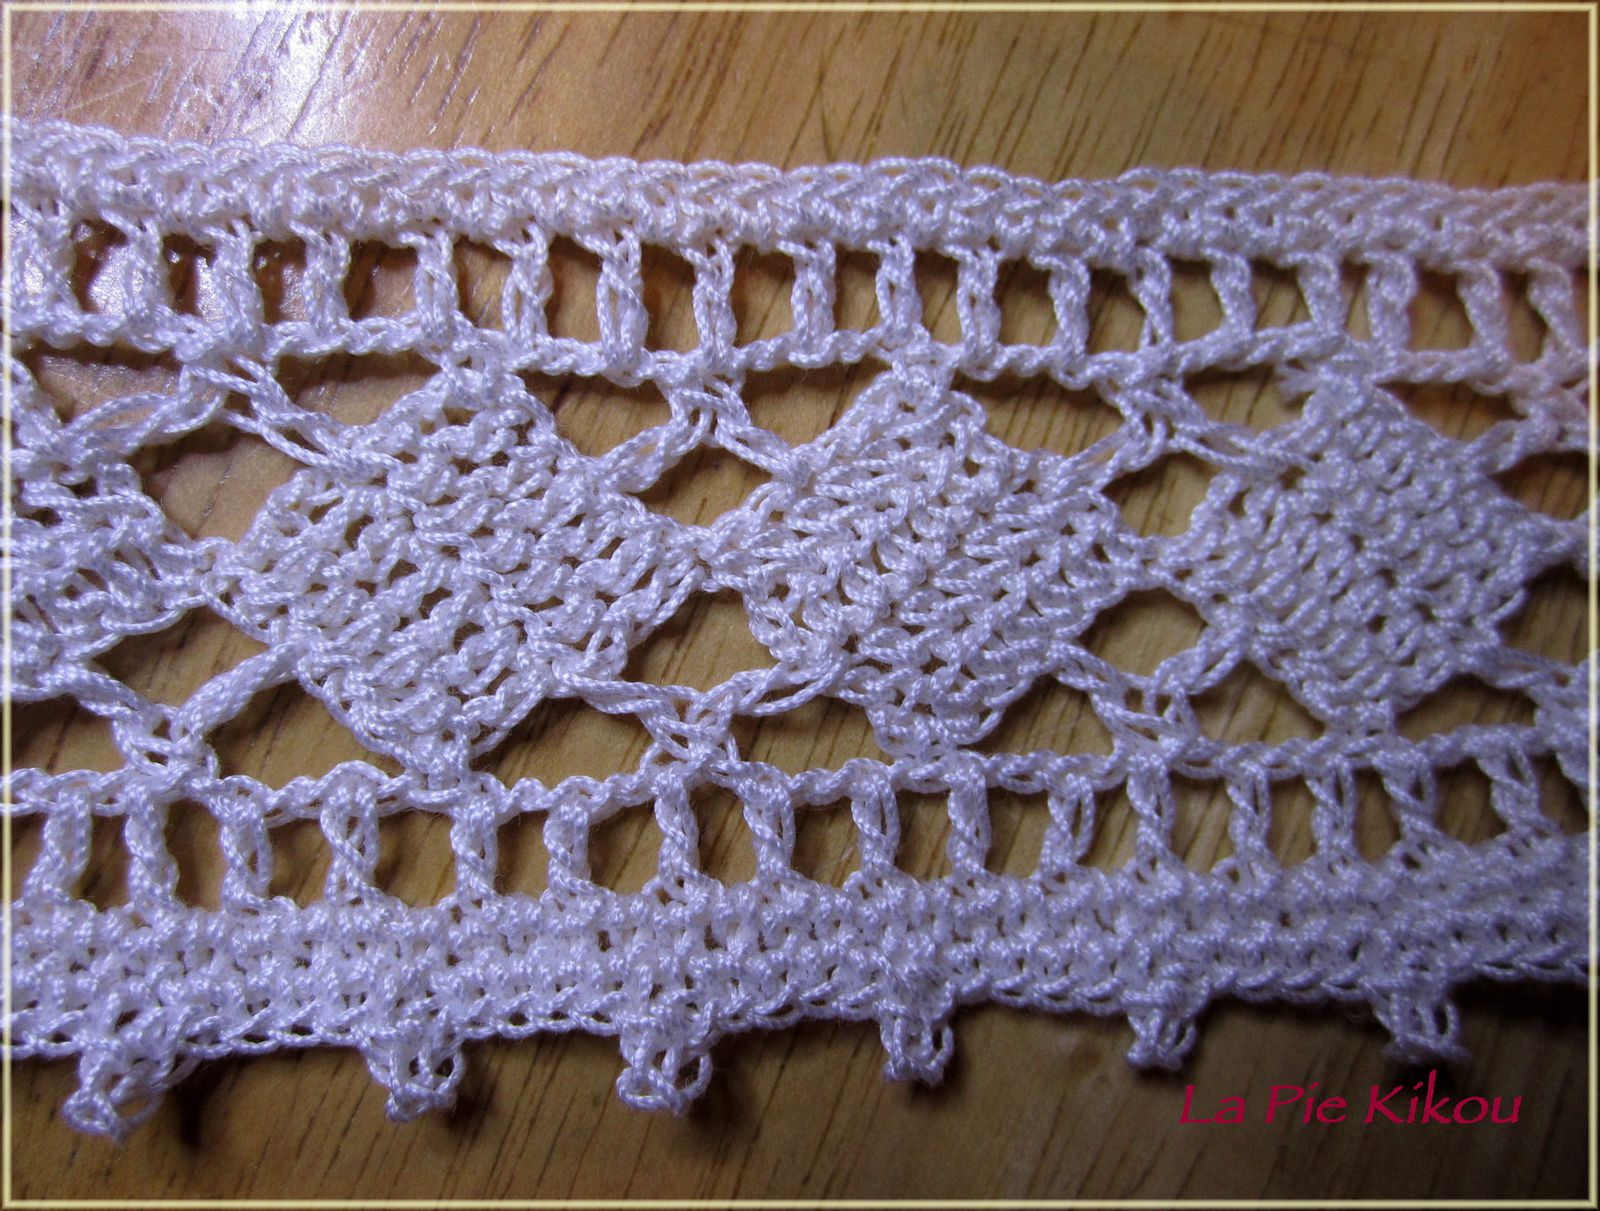 bordure crochet - la pie kikou